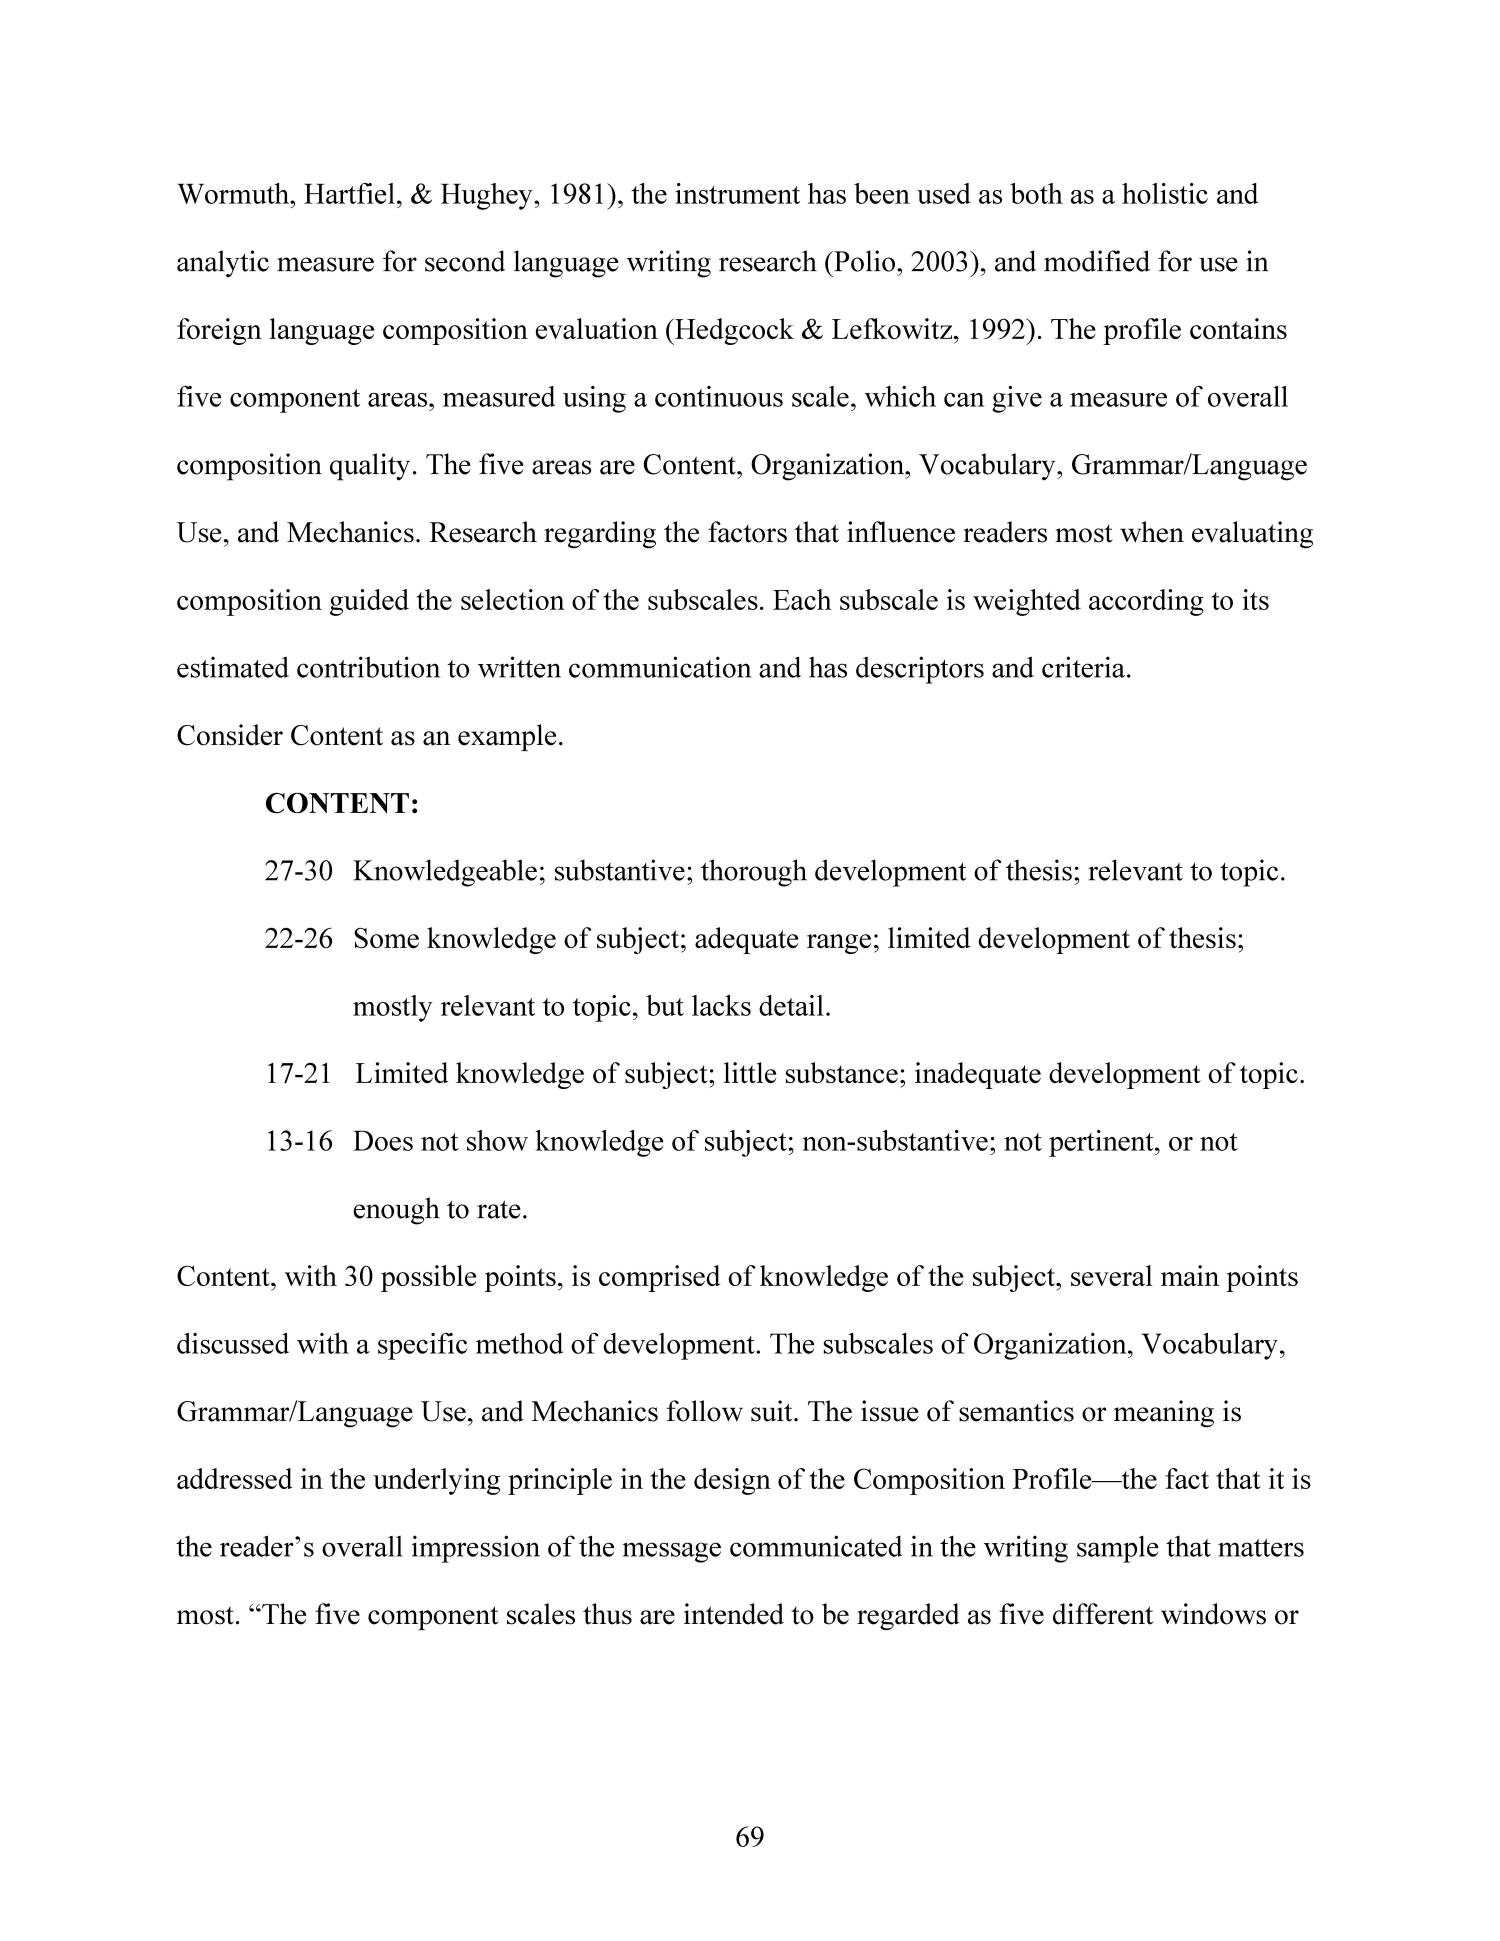 Effects of Technology-Enhanced Language Learning on Second Language Composition of University-Level Intermediate Spanish Students                                                                                                      69